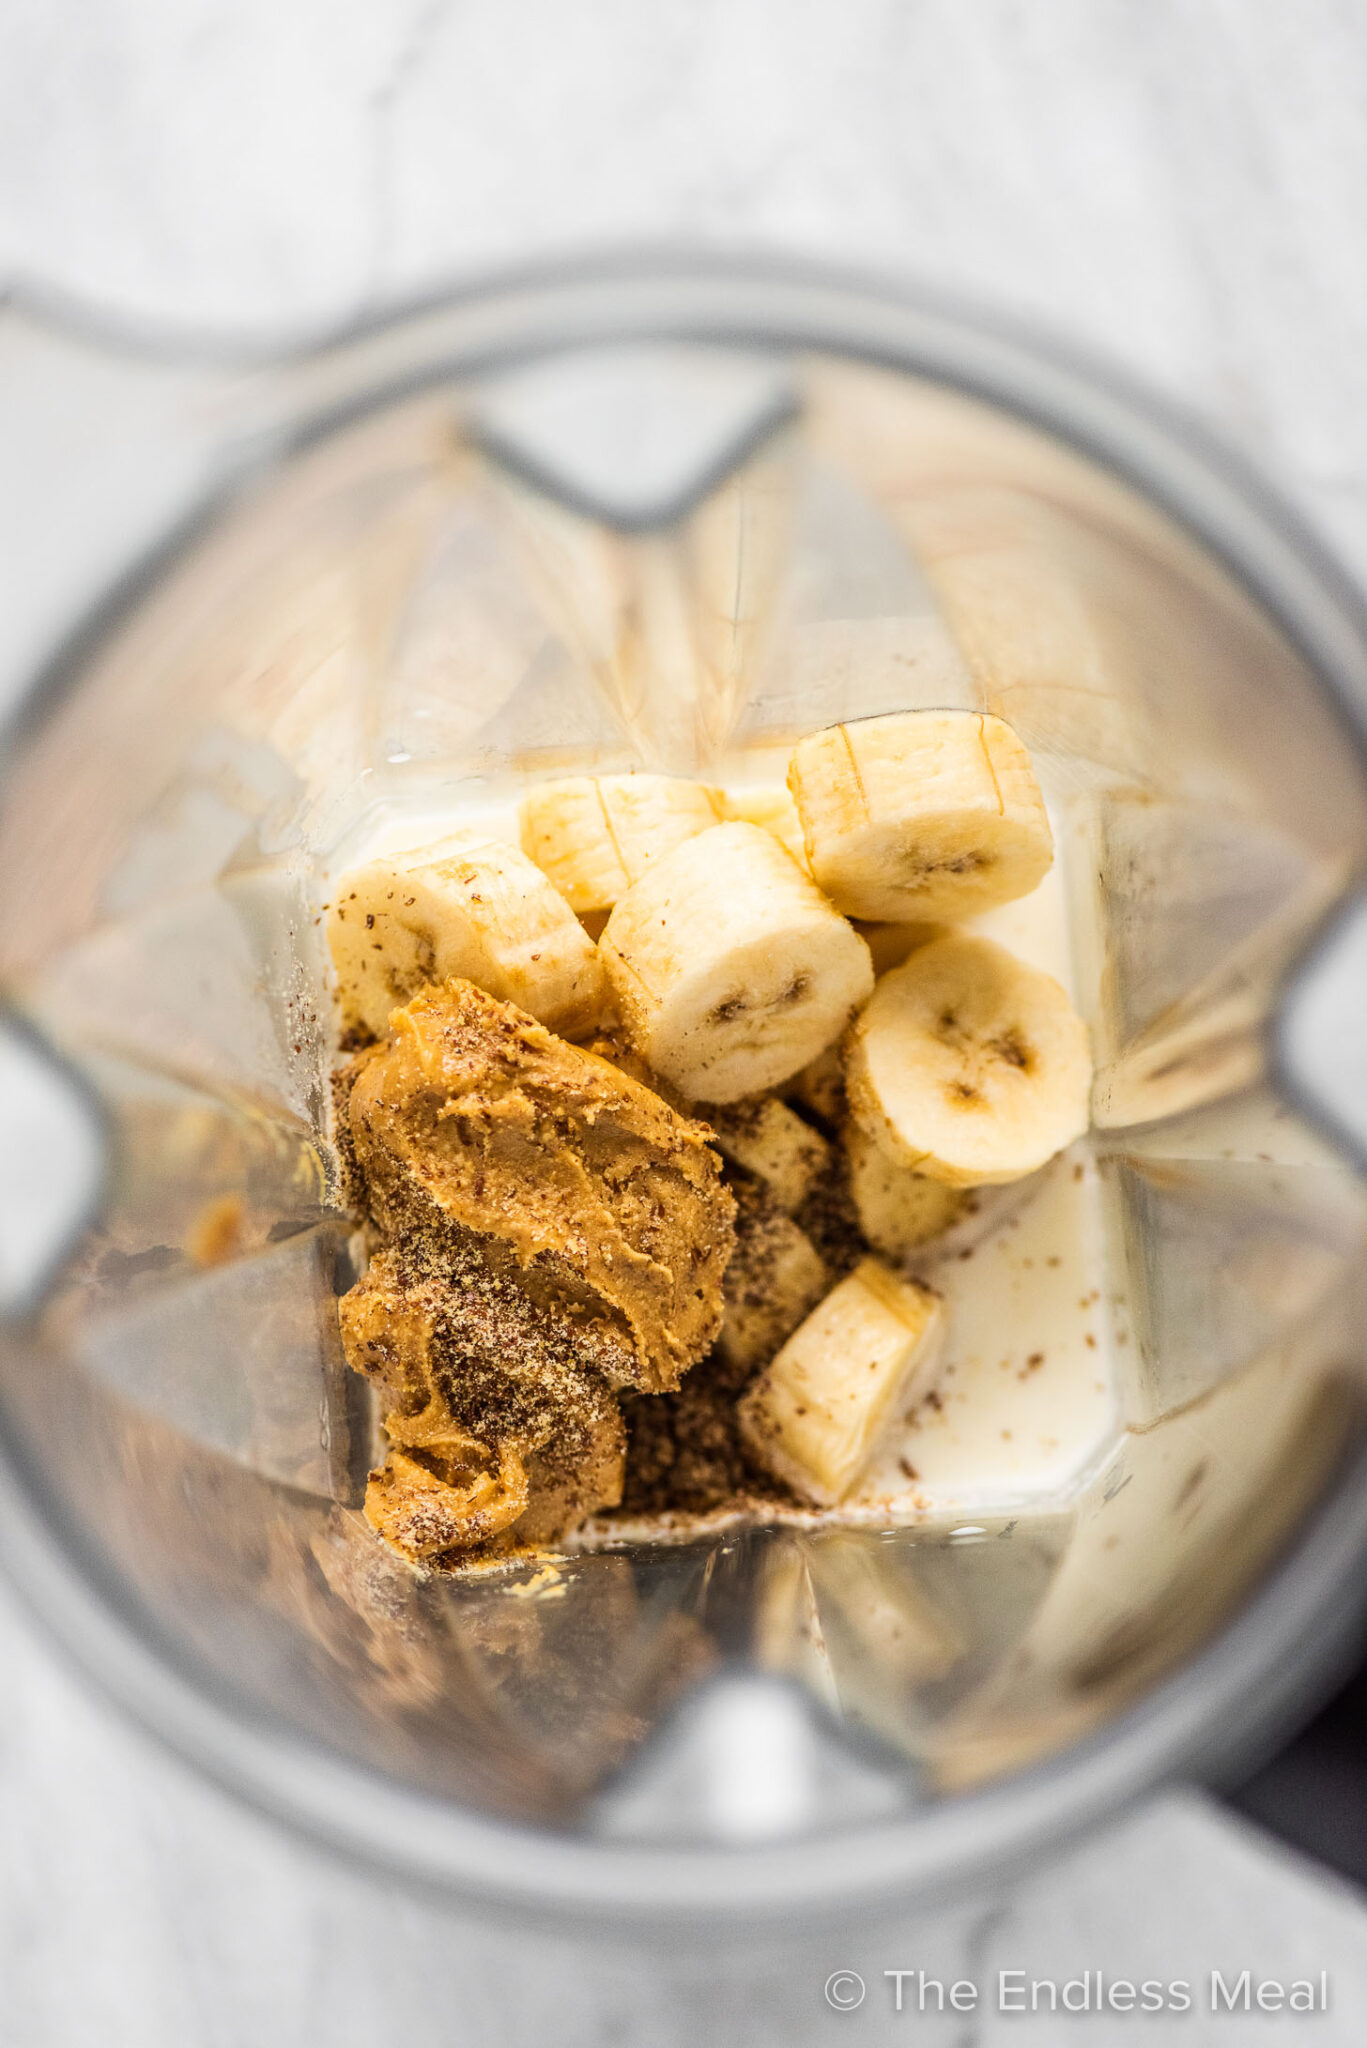 The ingredients for this Peanut Butter Banana Smoothie in a blender.